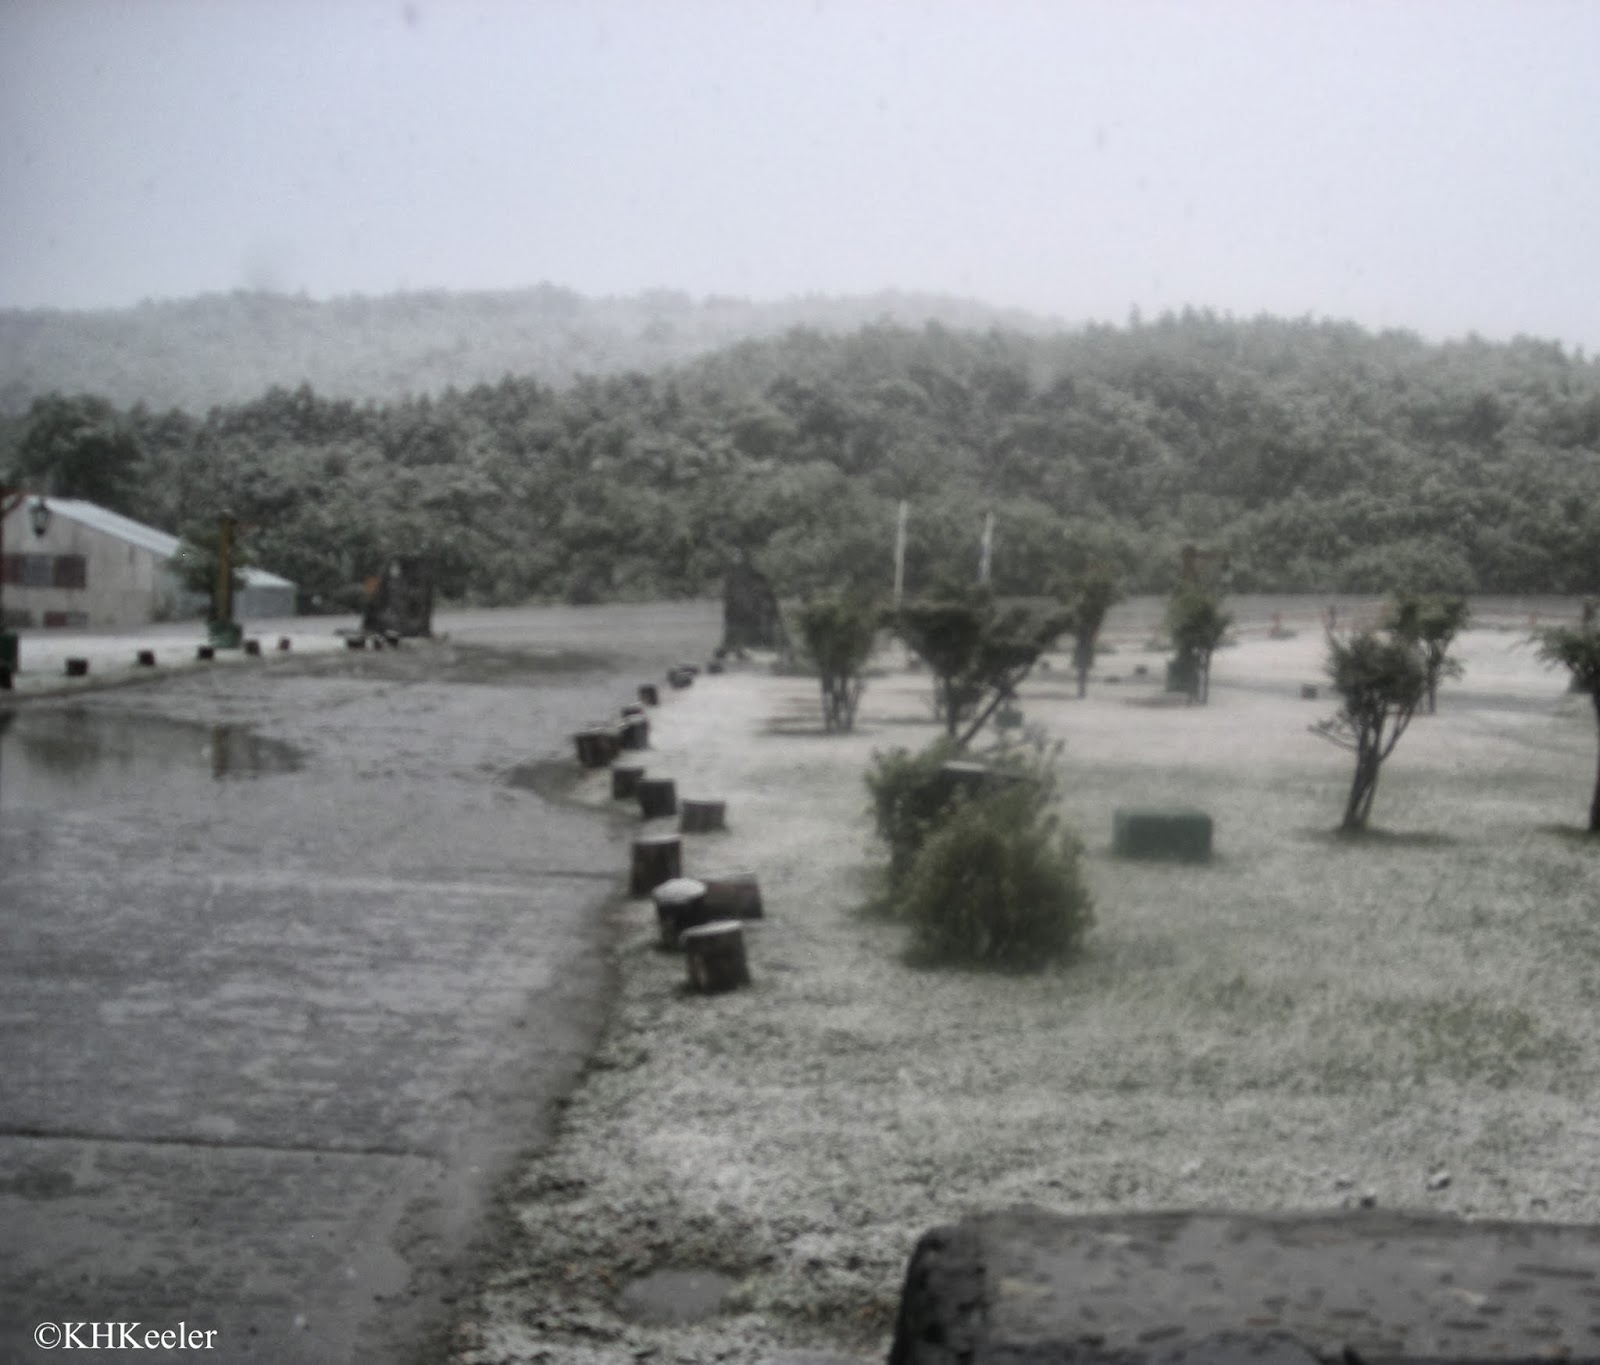 Rain mixed with snow, spring in Ushuia